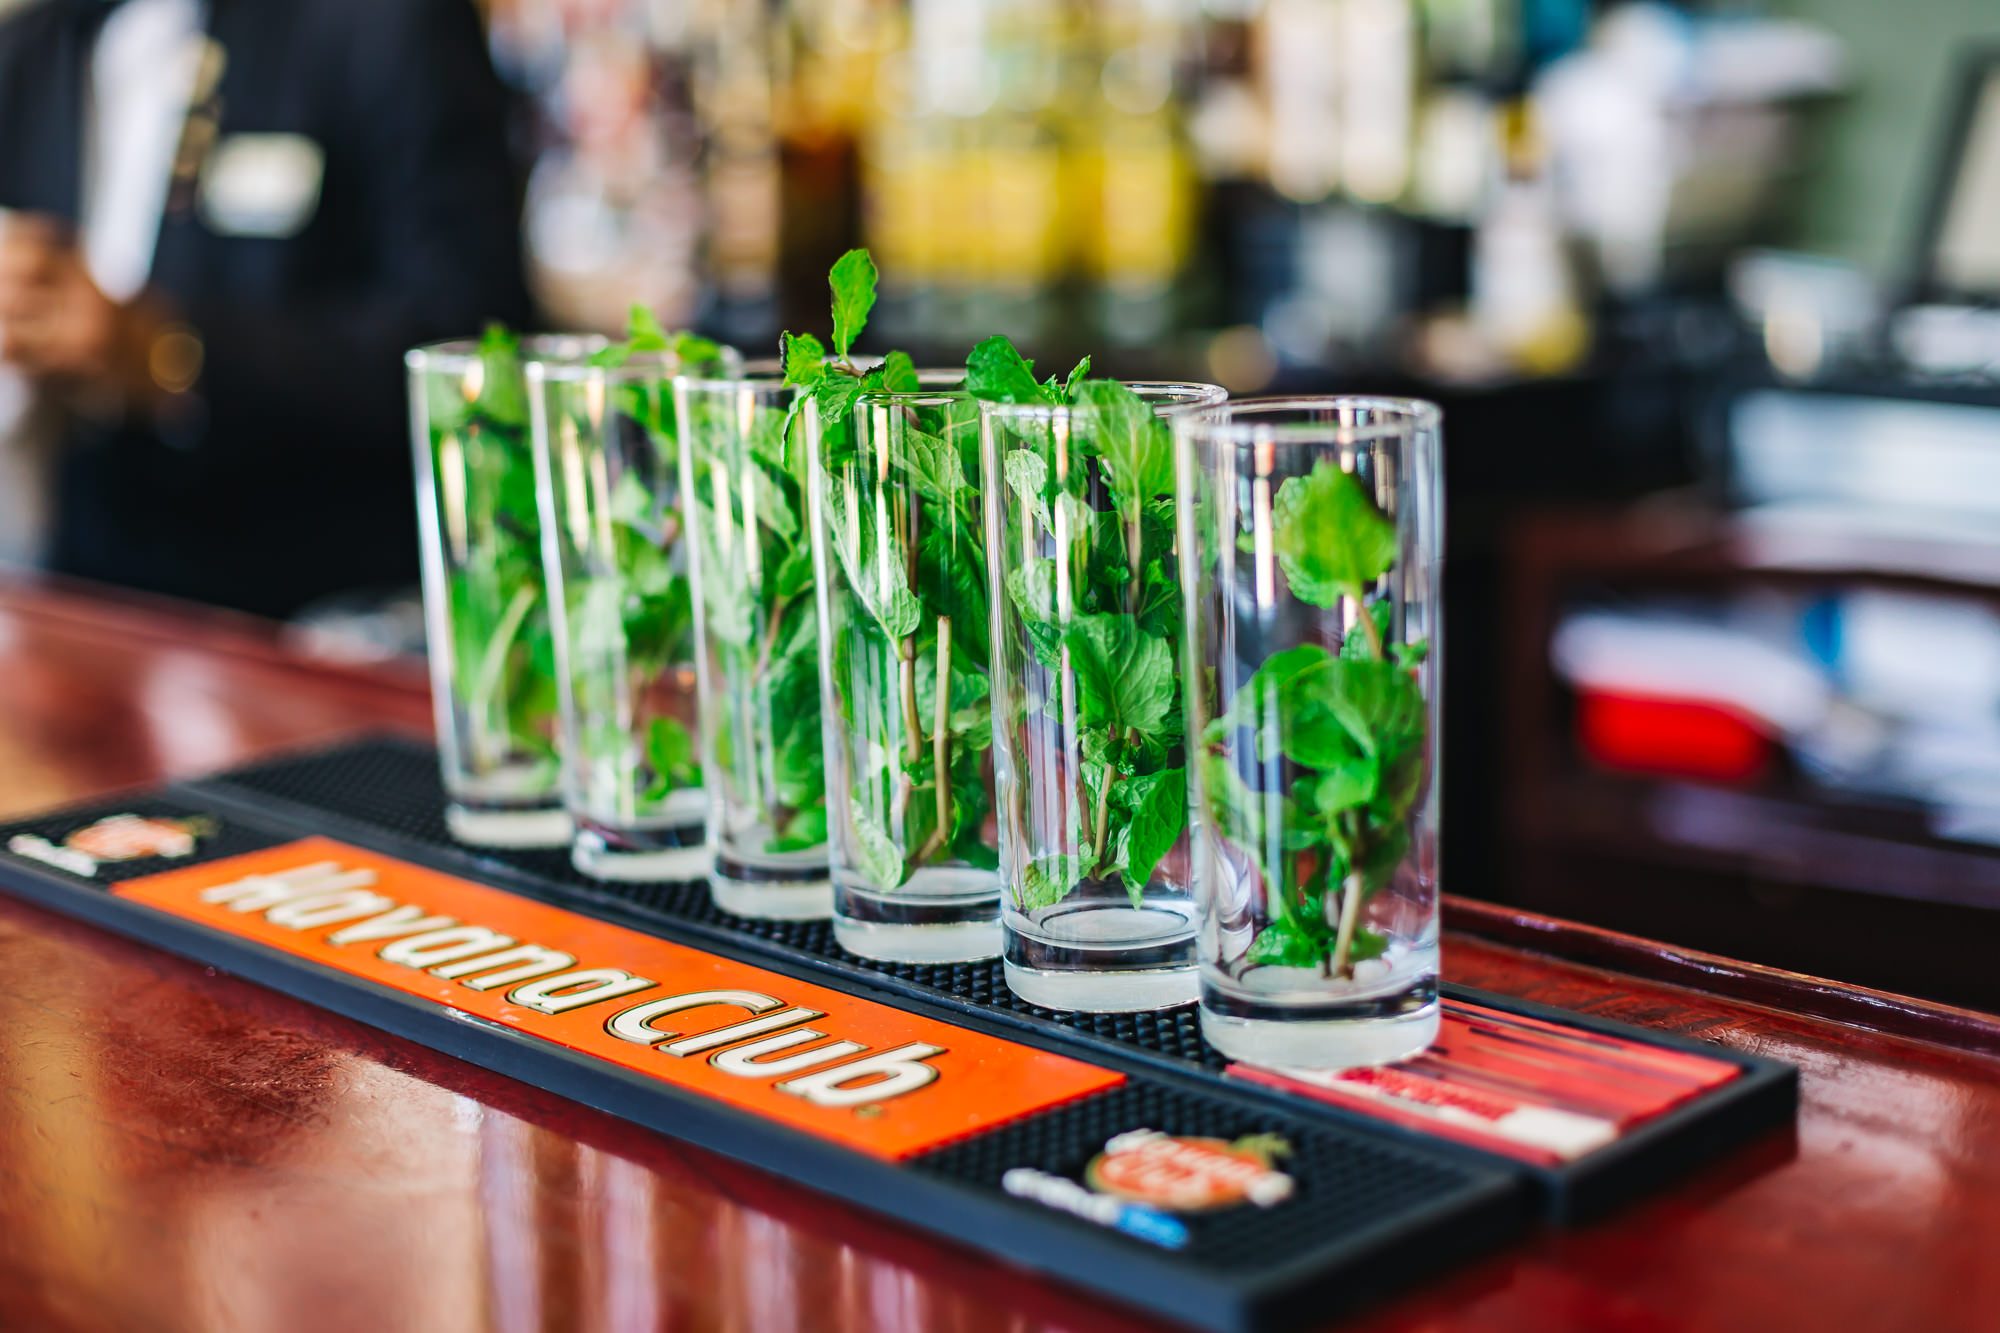 Mojitos are everywhere you go in Havana - they put an entire stem of mint in the cocktail